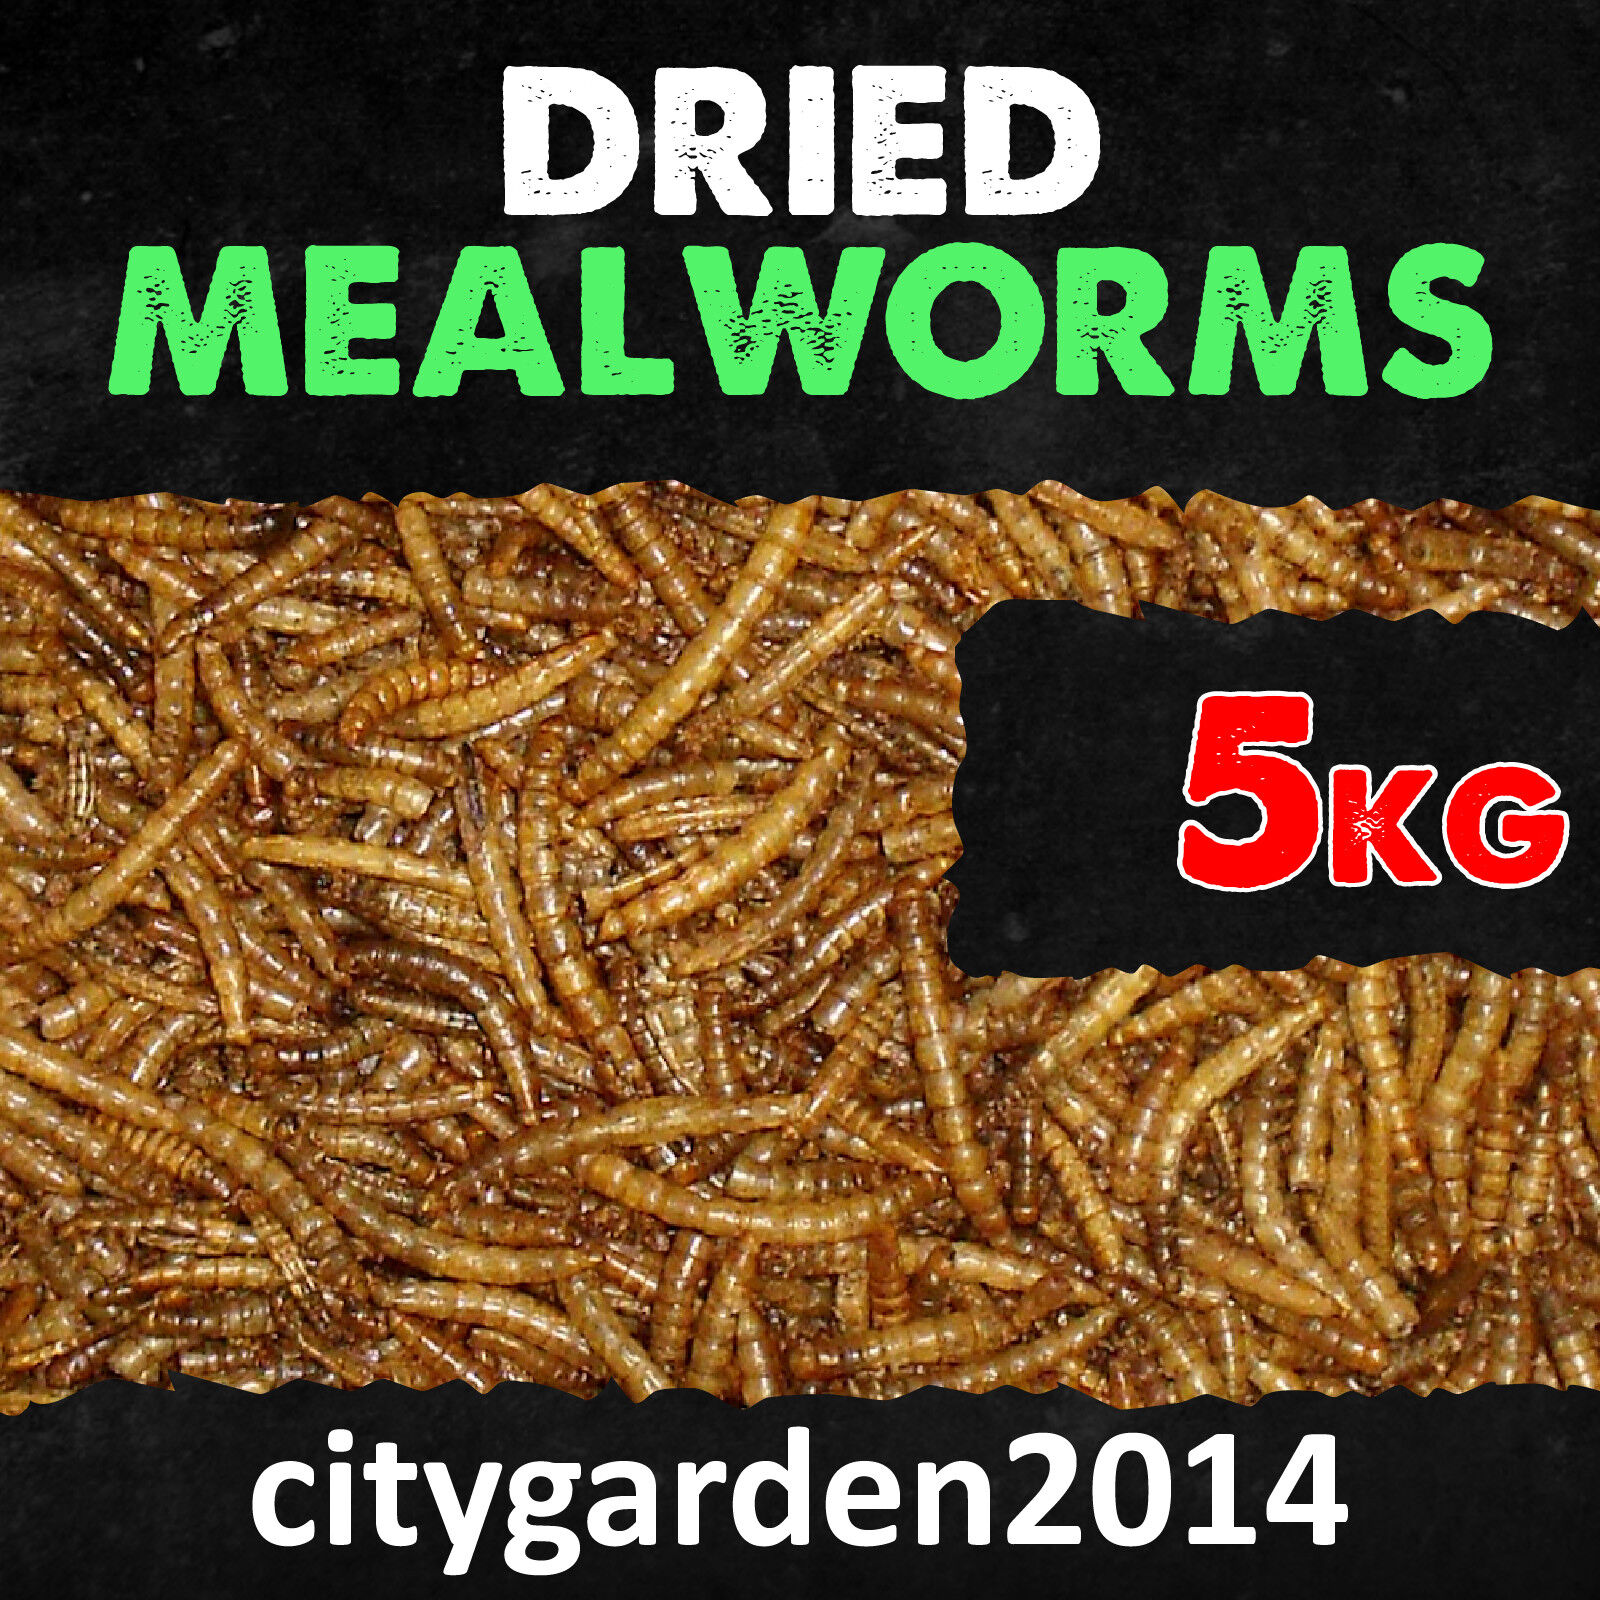 5kg Wild Bird Dried Mealworms Premium Quality Next Day Delivery